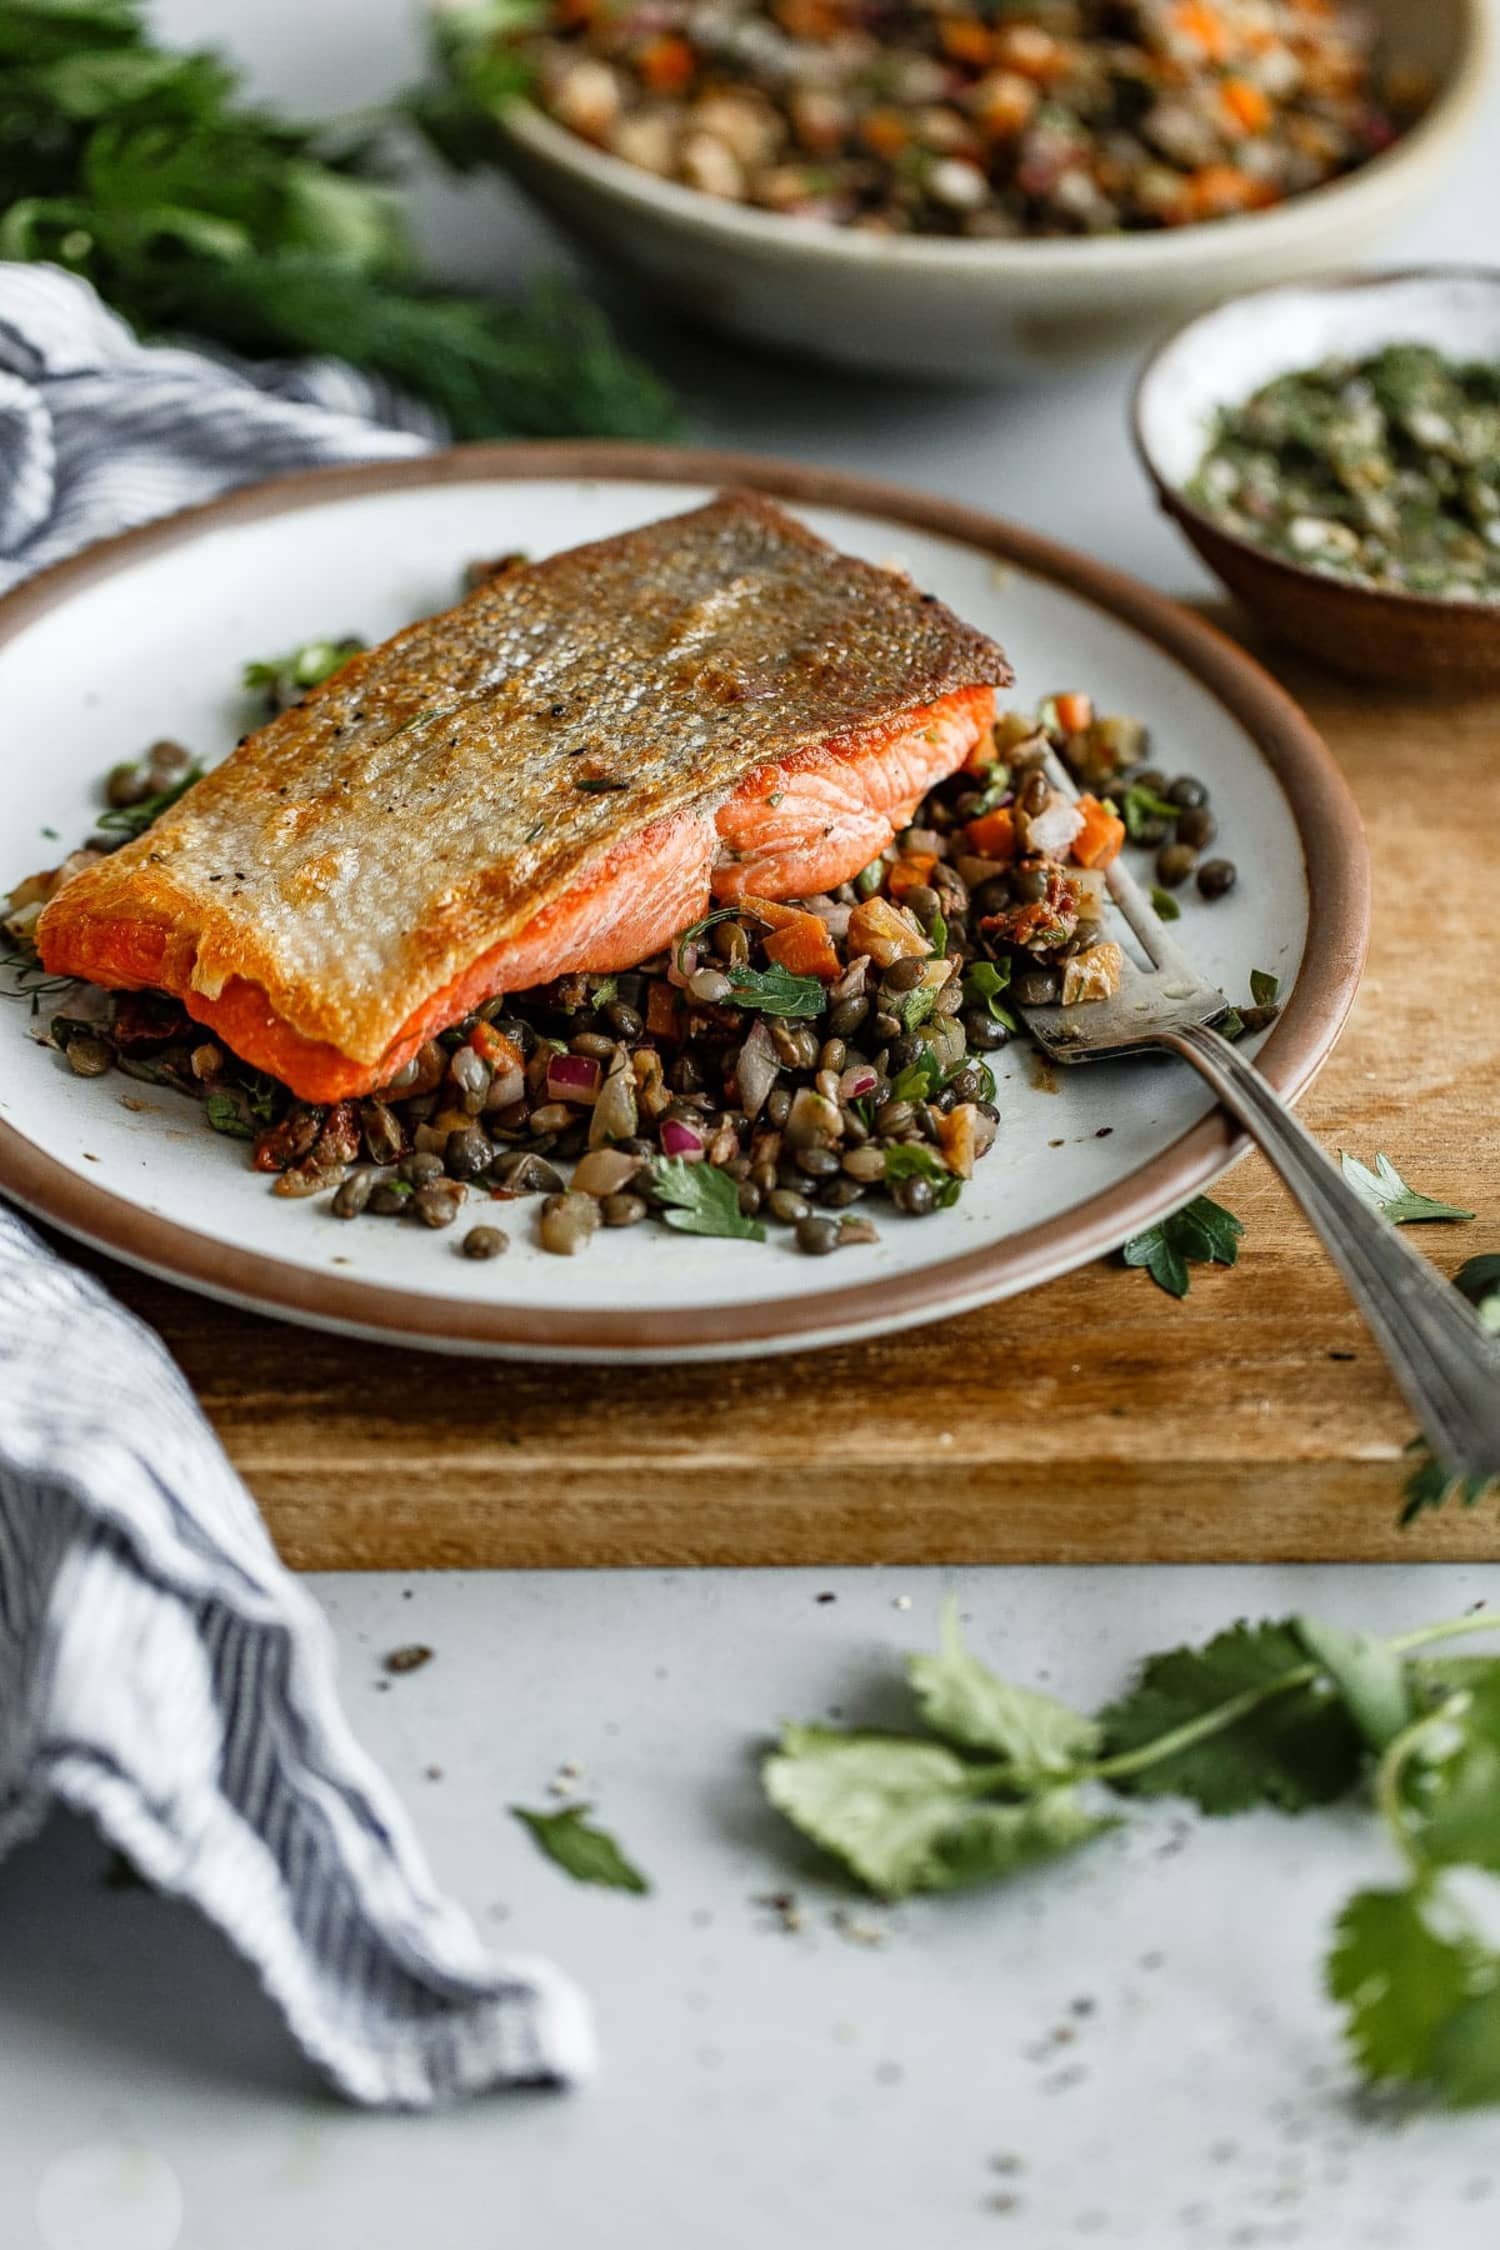 This Salmon and French Lentil Salad Is All About the Caper-Herb Vinaigrette